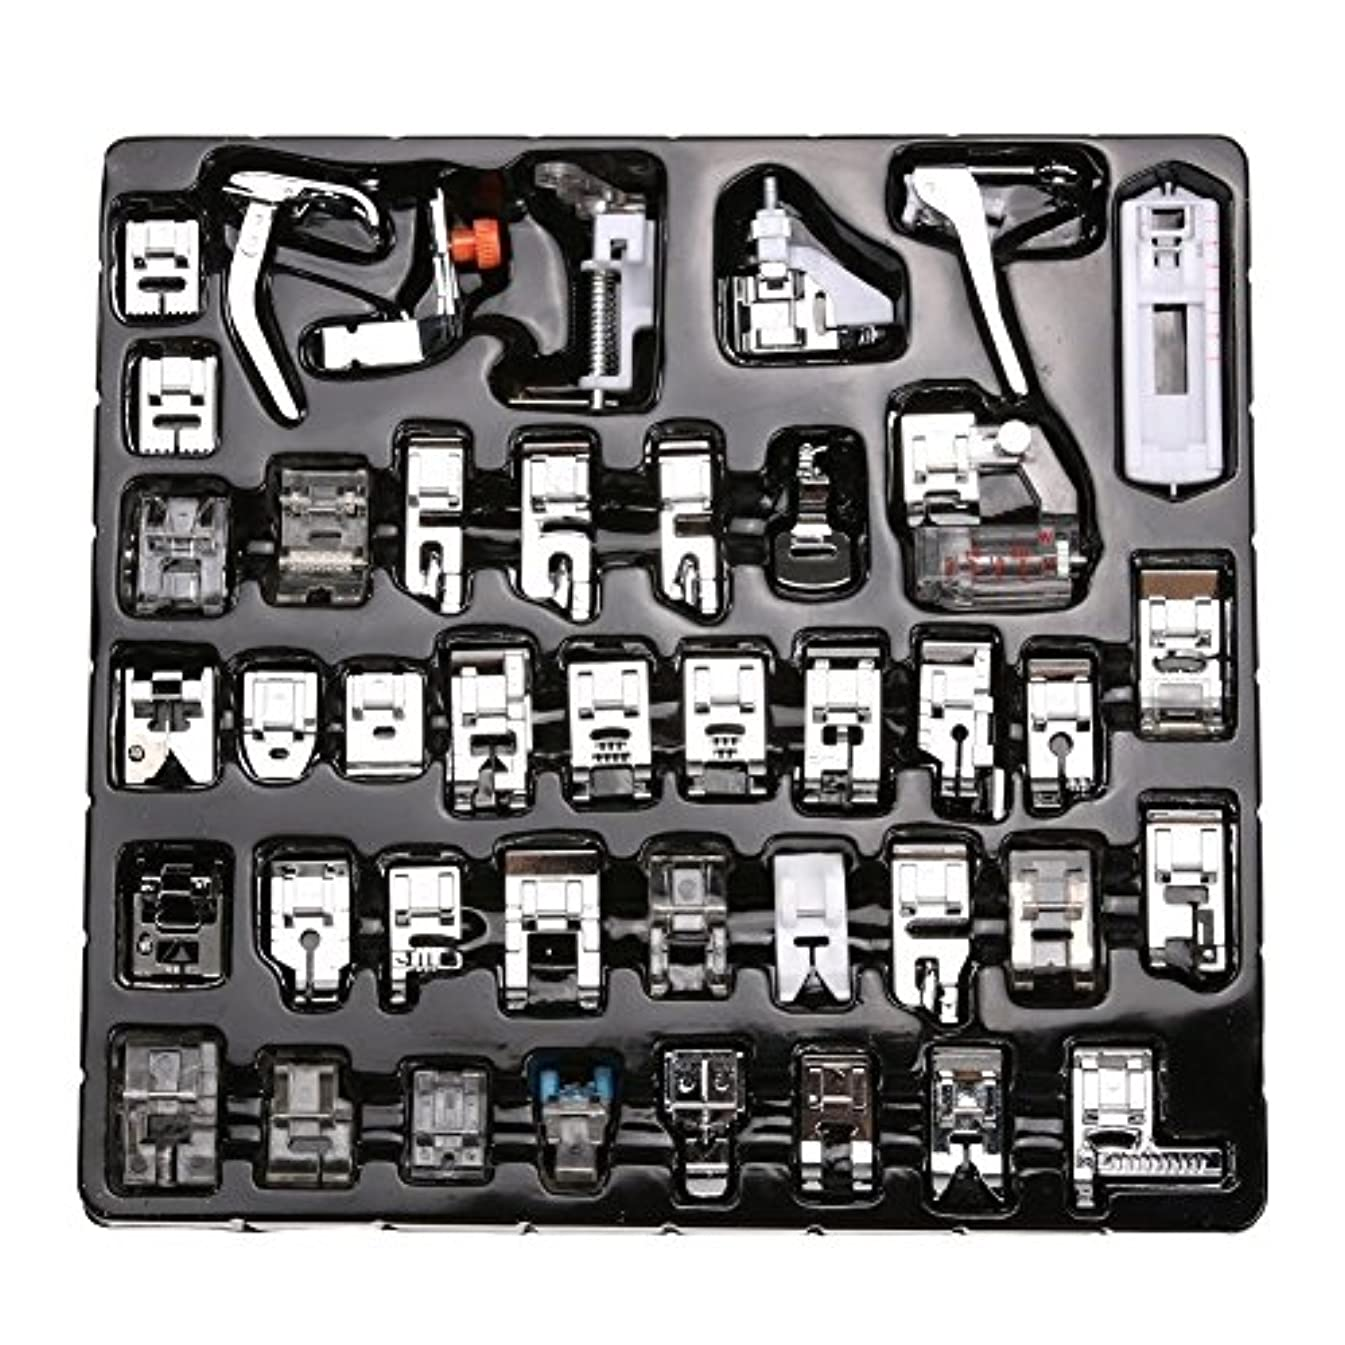 Professional Domestic Sewing Foot Presser Foot Presser Feet Set for Singer, Brother, Janome,Kenmore, Babylock,Elna,Toyota,New Home,Simplicity and Low Shank Sewing Machines (42 PCS)